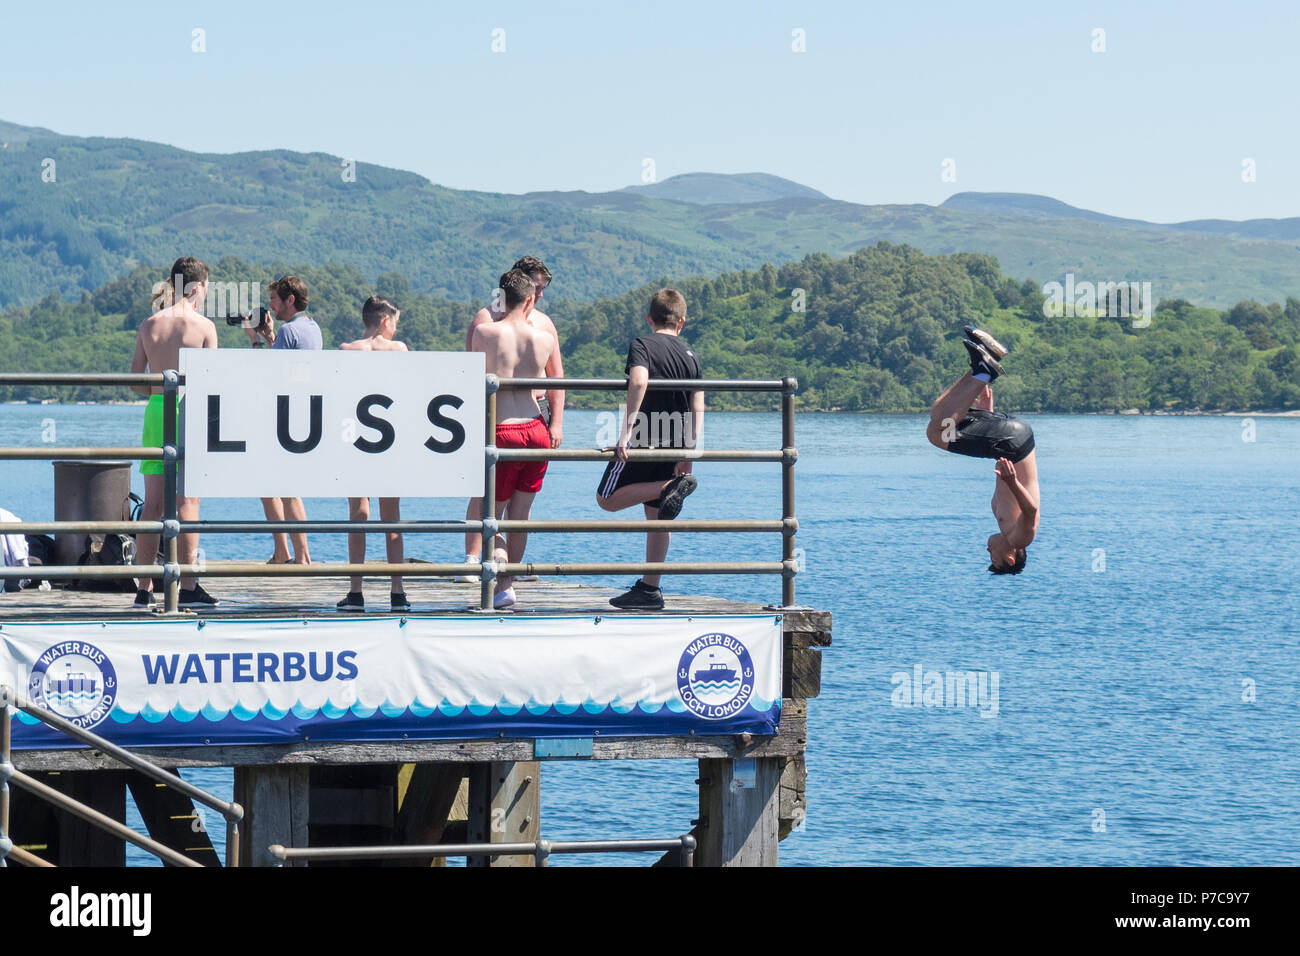 diving and somersaulting off Luss Pier into Loch Lomond during hot weather, Scotland, UK - Stock Image